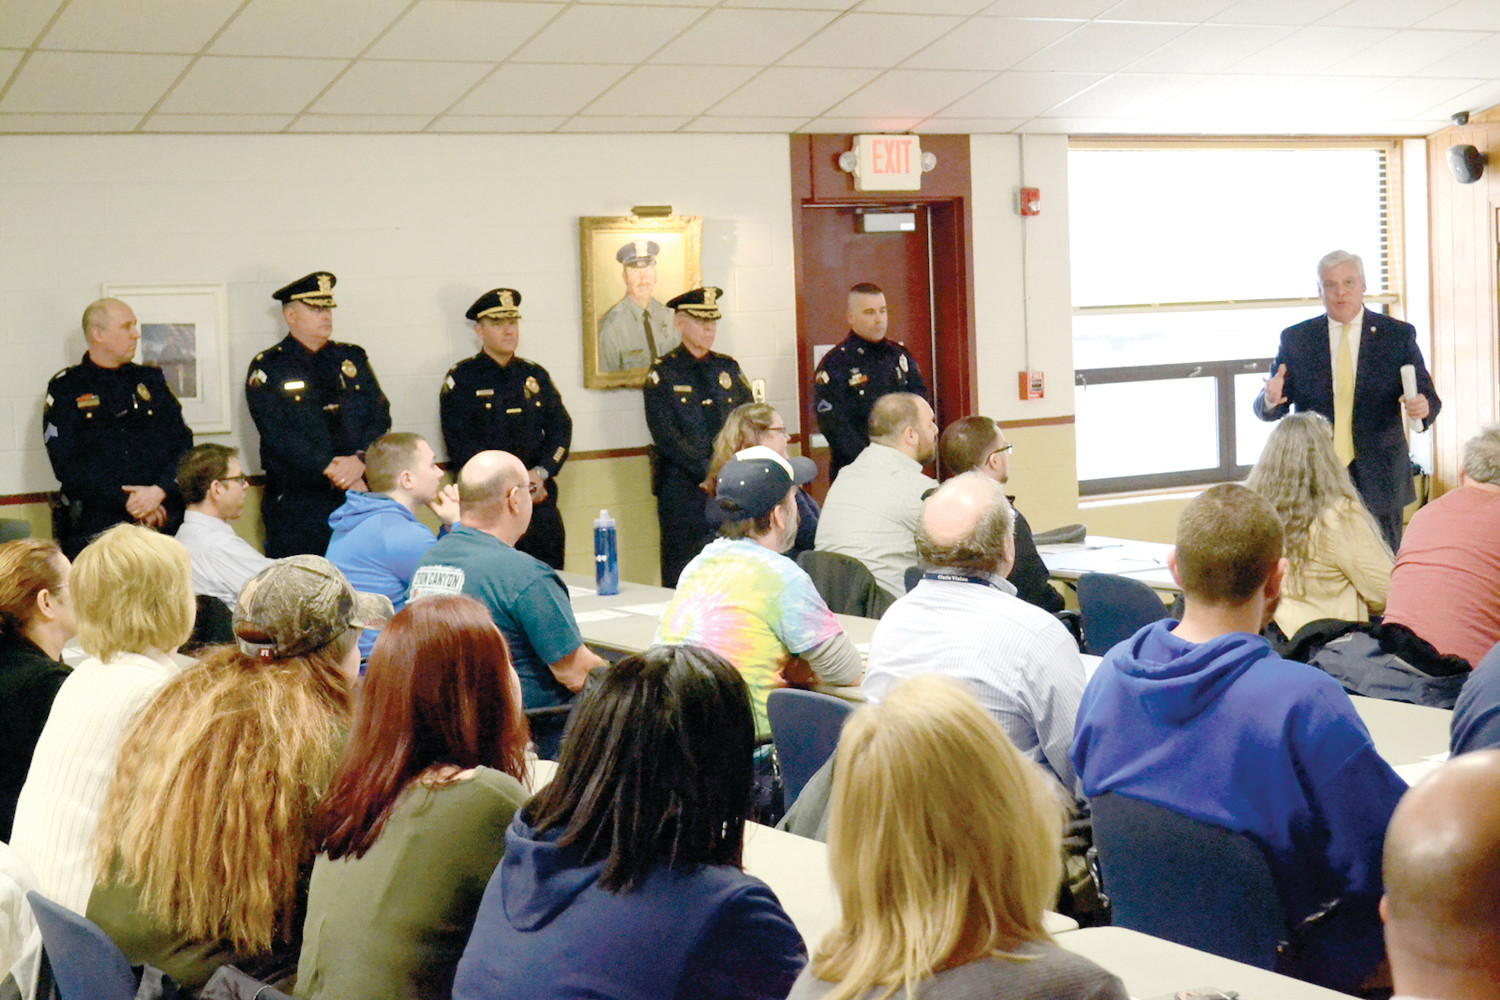 CLASS IN SESSION: Mayor Scott Avedisian provided welcoming comments to the 30th class of the Warwick Police Department's Citizens' Police Academy. Community police officer Daniel (to his left), a 17-year veteran of the Warwick Police Department, instructs the class.